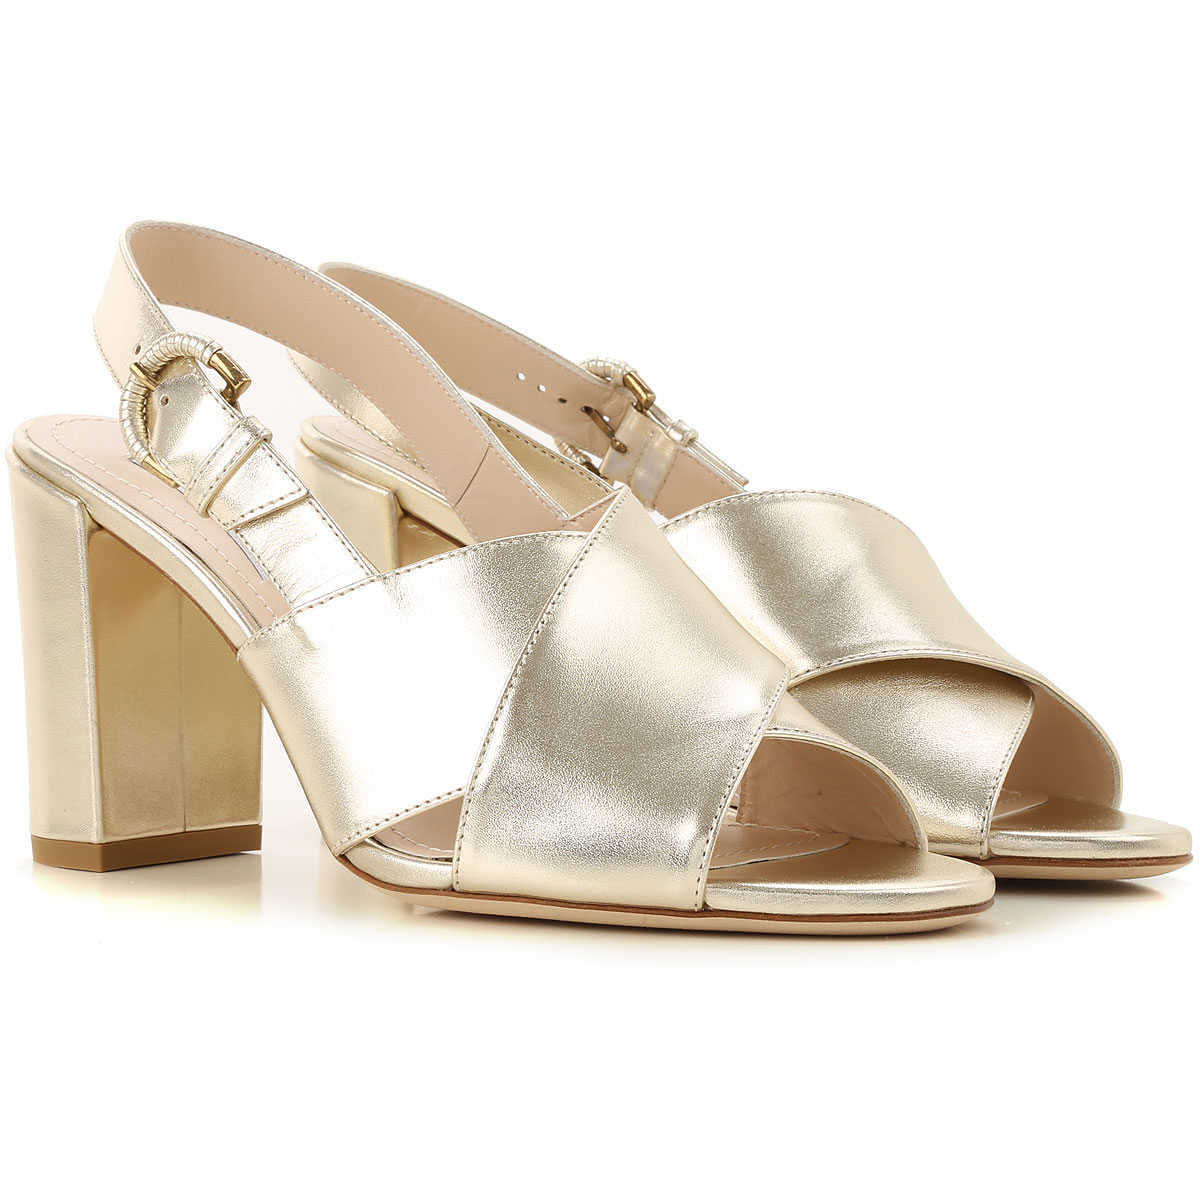 Tods Sandals for Women On Sale Gold - GOOFASH